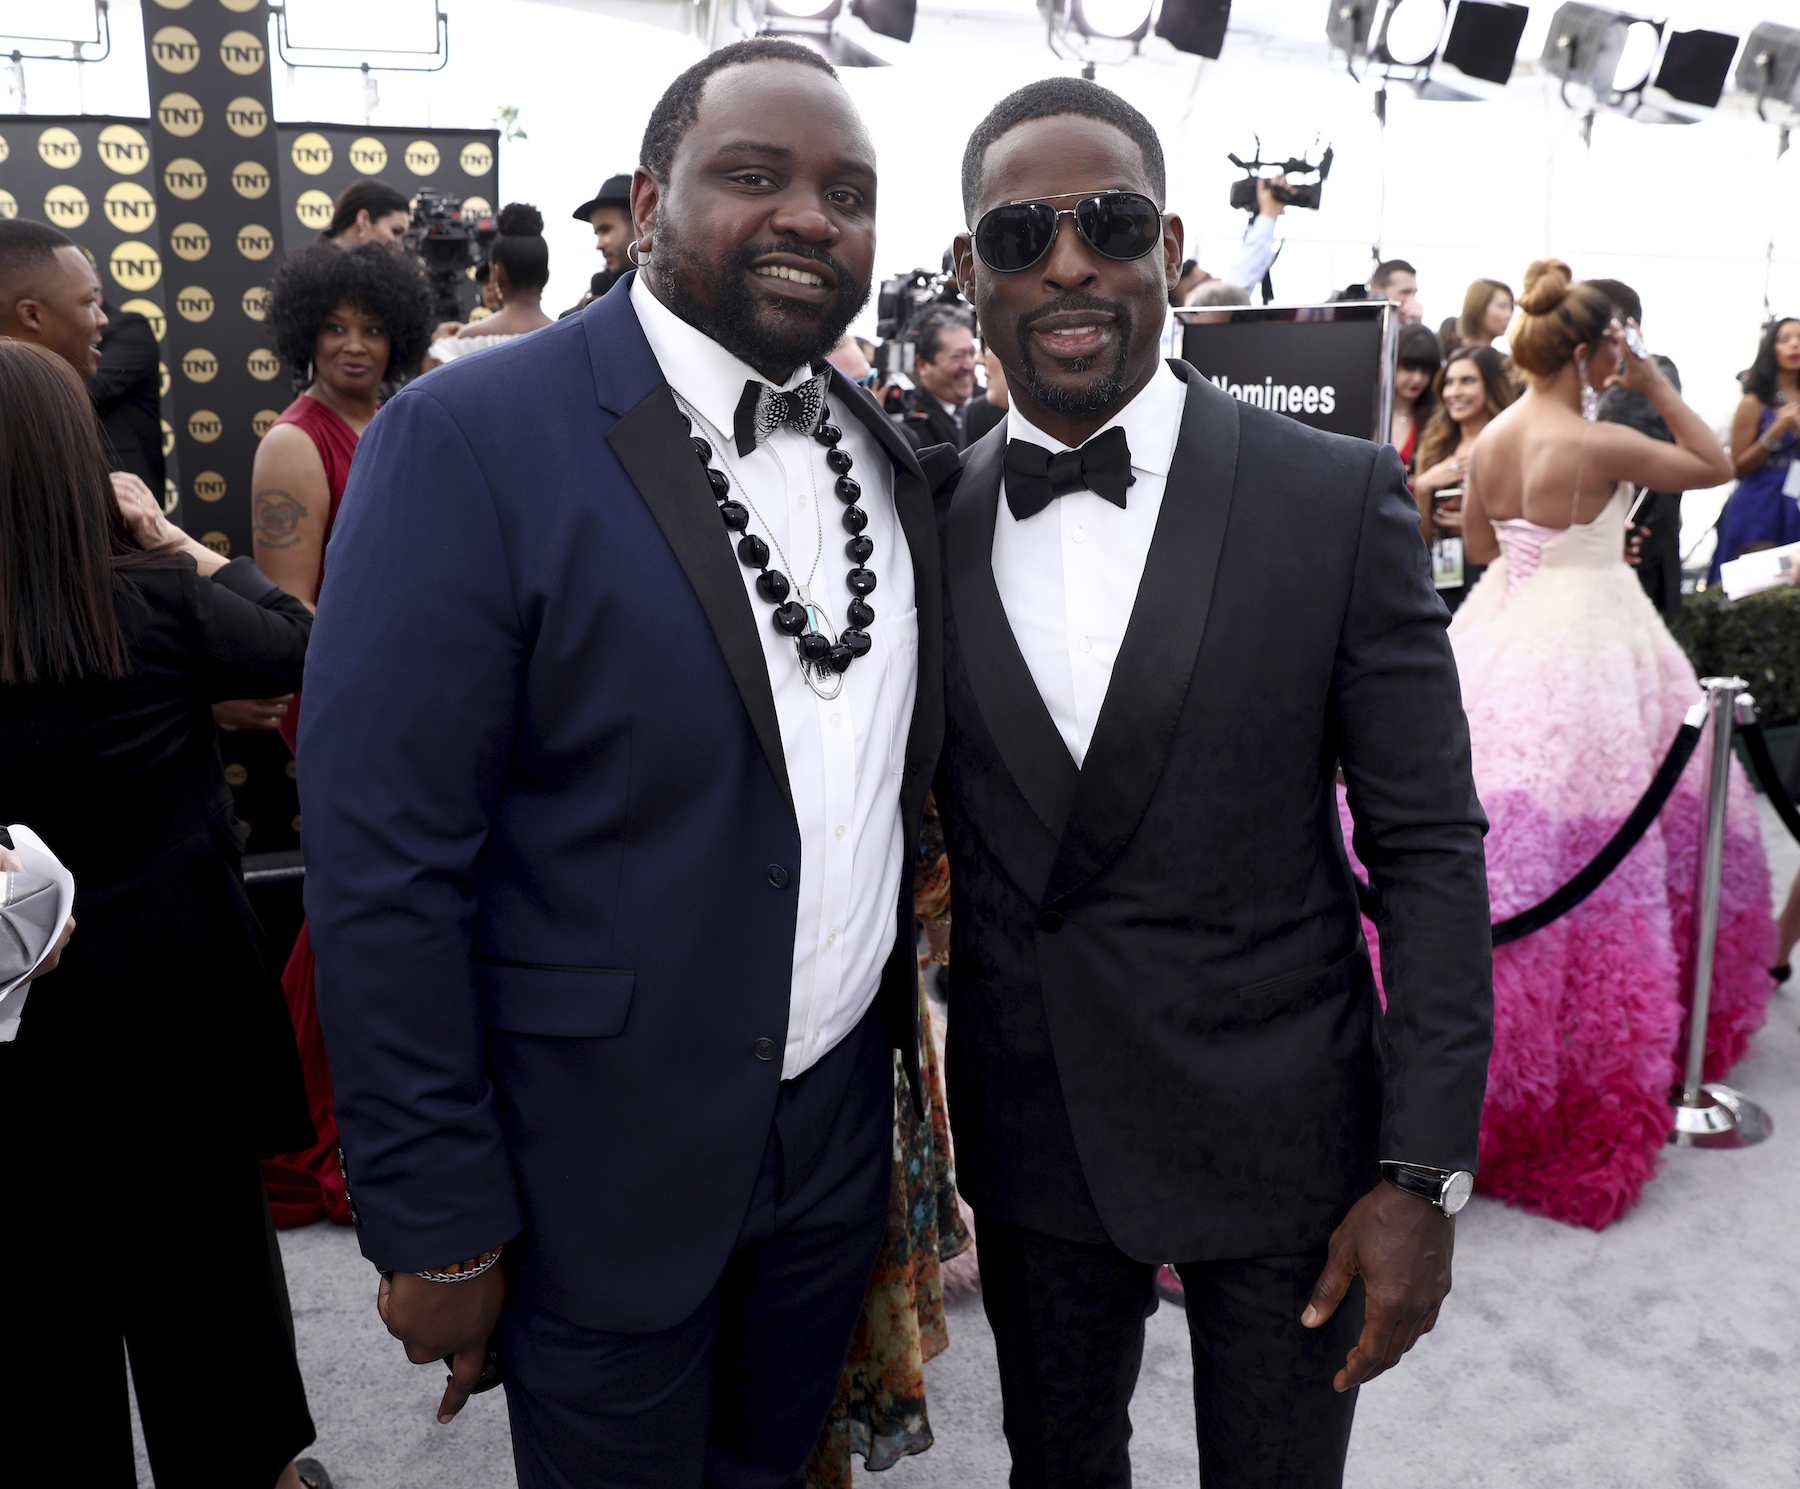 <div class='meta'><div class='origin-logo' data-origin='AP'></div><span class='caption-text' data-credit='Matt Sayles/Invision/AP'>Brian Tyree Henry, left, and Sterling K. Brown arrive at the 25th annual Screen Actors Guild Awards at the Shrine Auditorium & Expo Hall on Sunday, Jan. 27, 2019, in Los Angeles.</span></div>